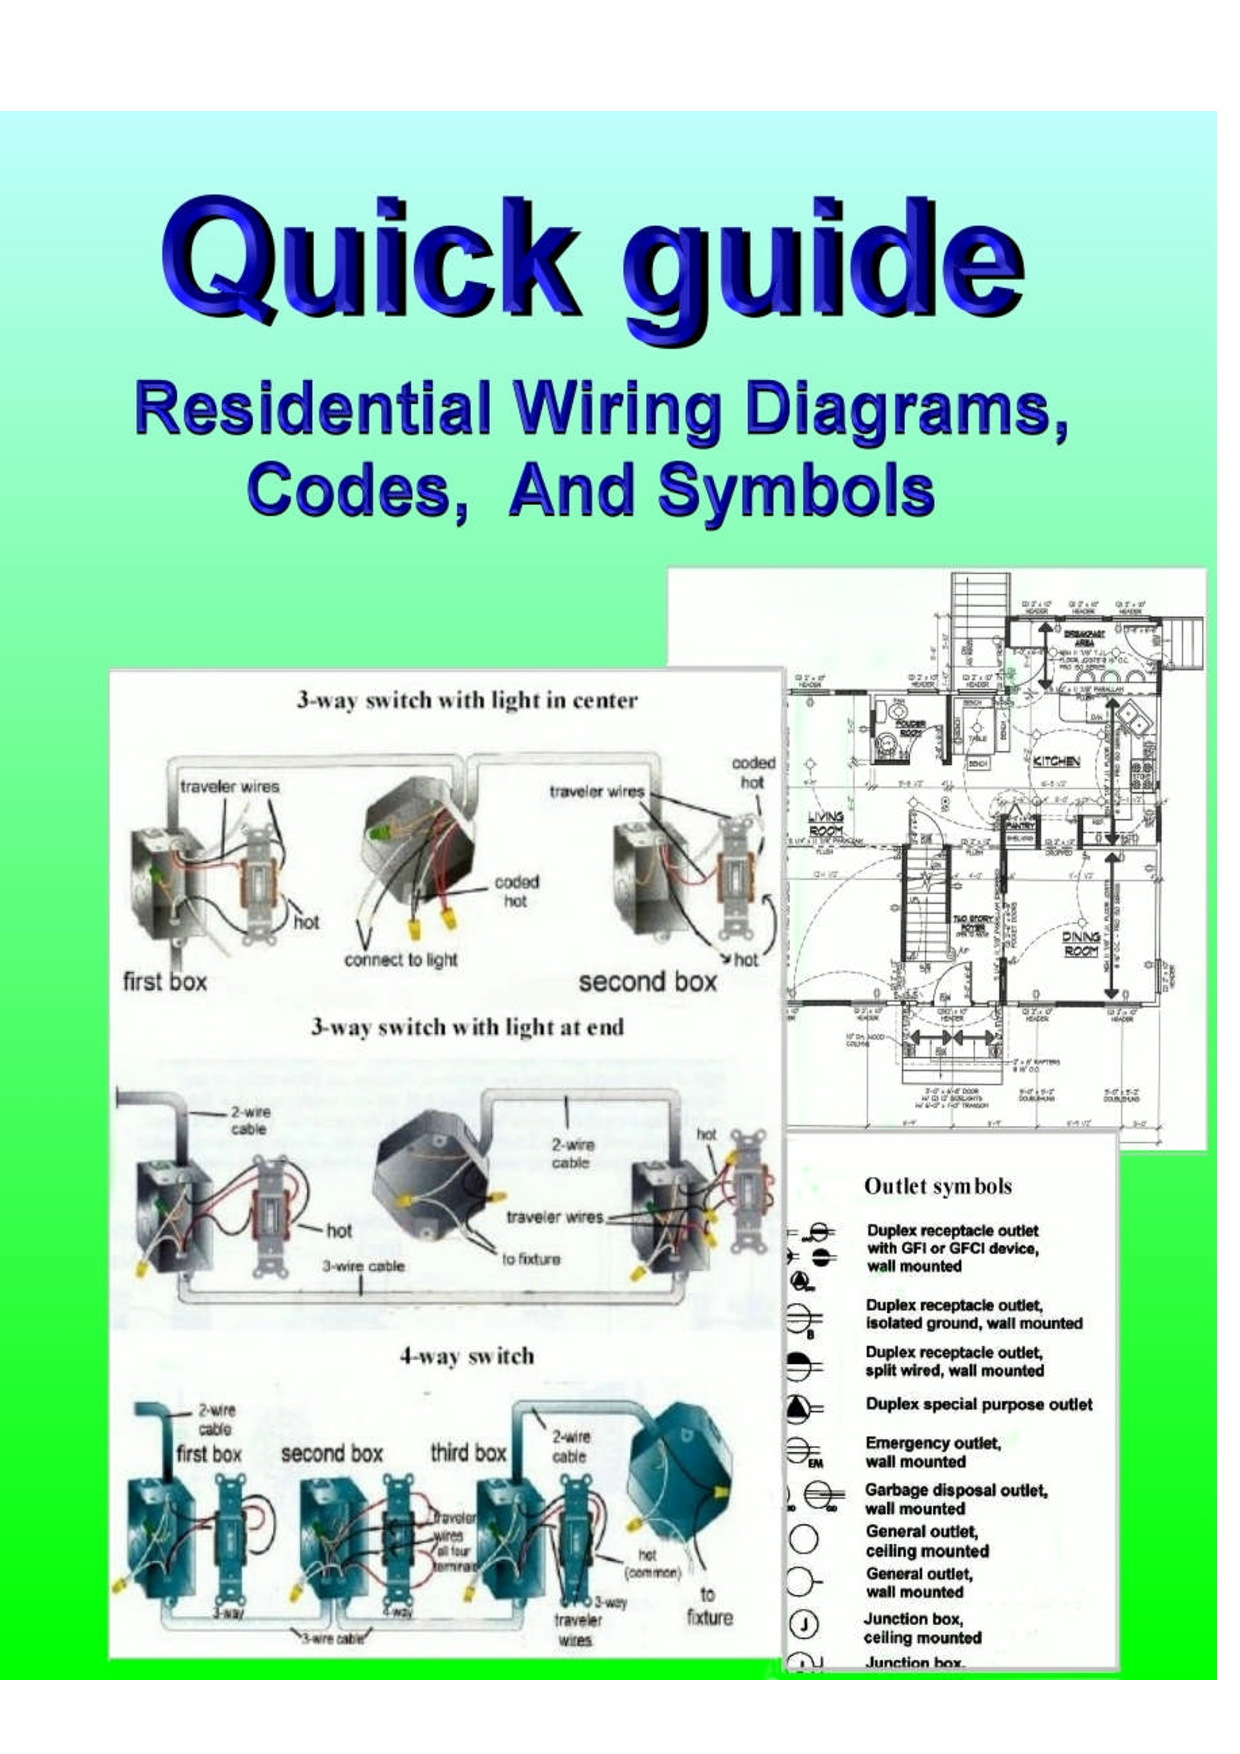 Home electrical wiring diagramspdf download legal documents 39 home electrical wiring diagramspdf download legal documents 39 pages with many diagrams and illustrations asfbconference2016 Image collections